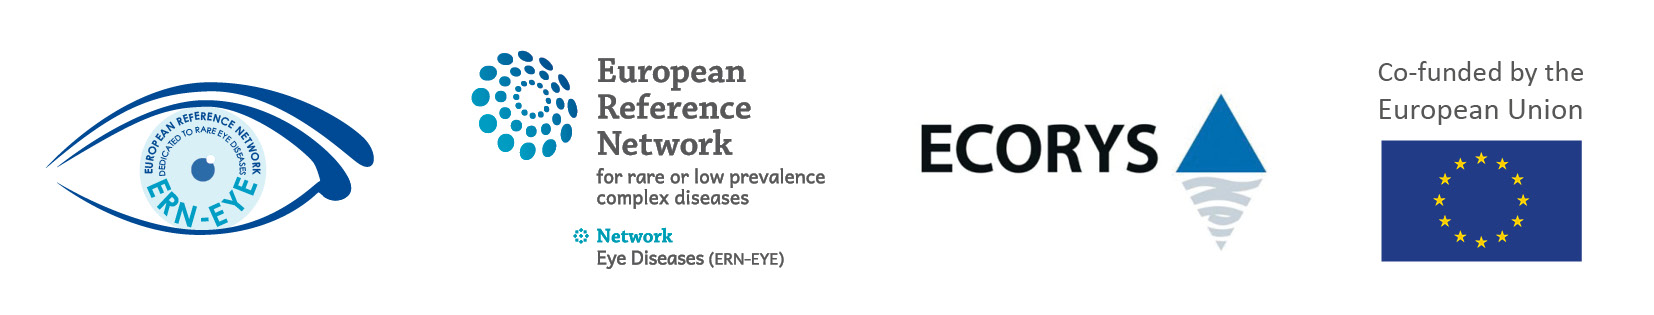 ERN-EYE and ECORYS co-funded by the European Union